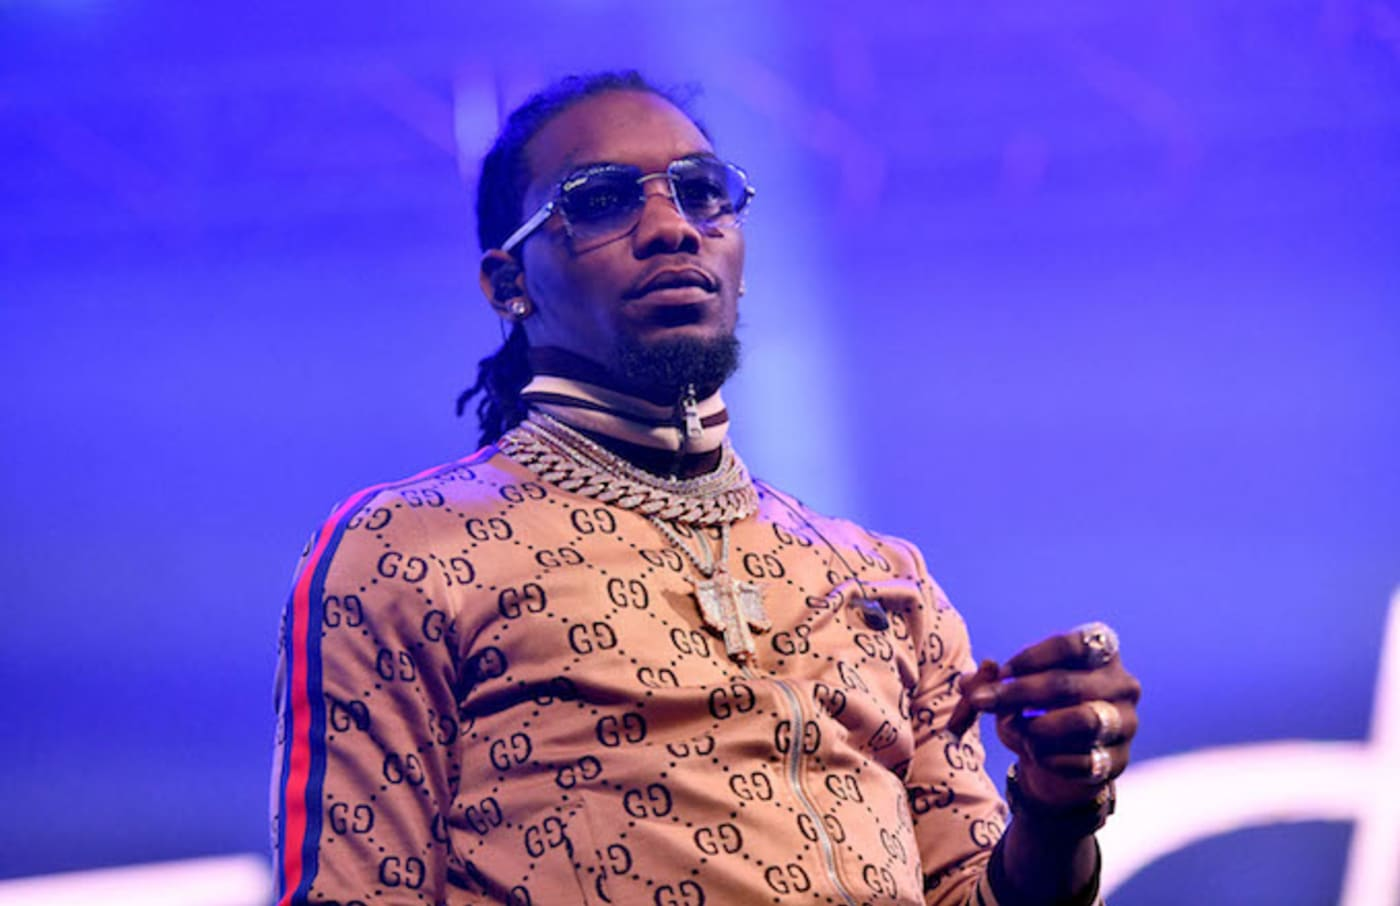 Offset of the group Migos